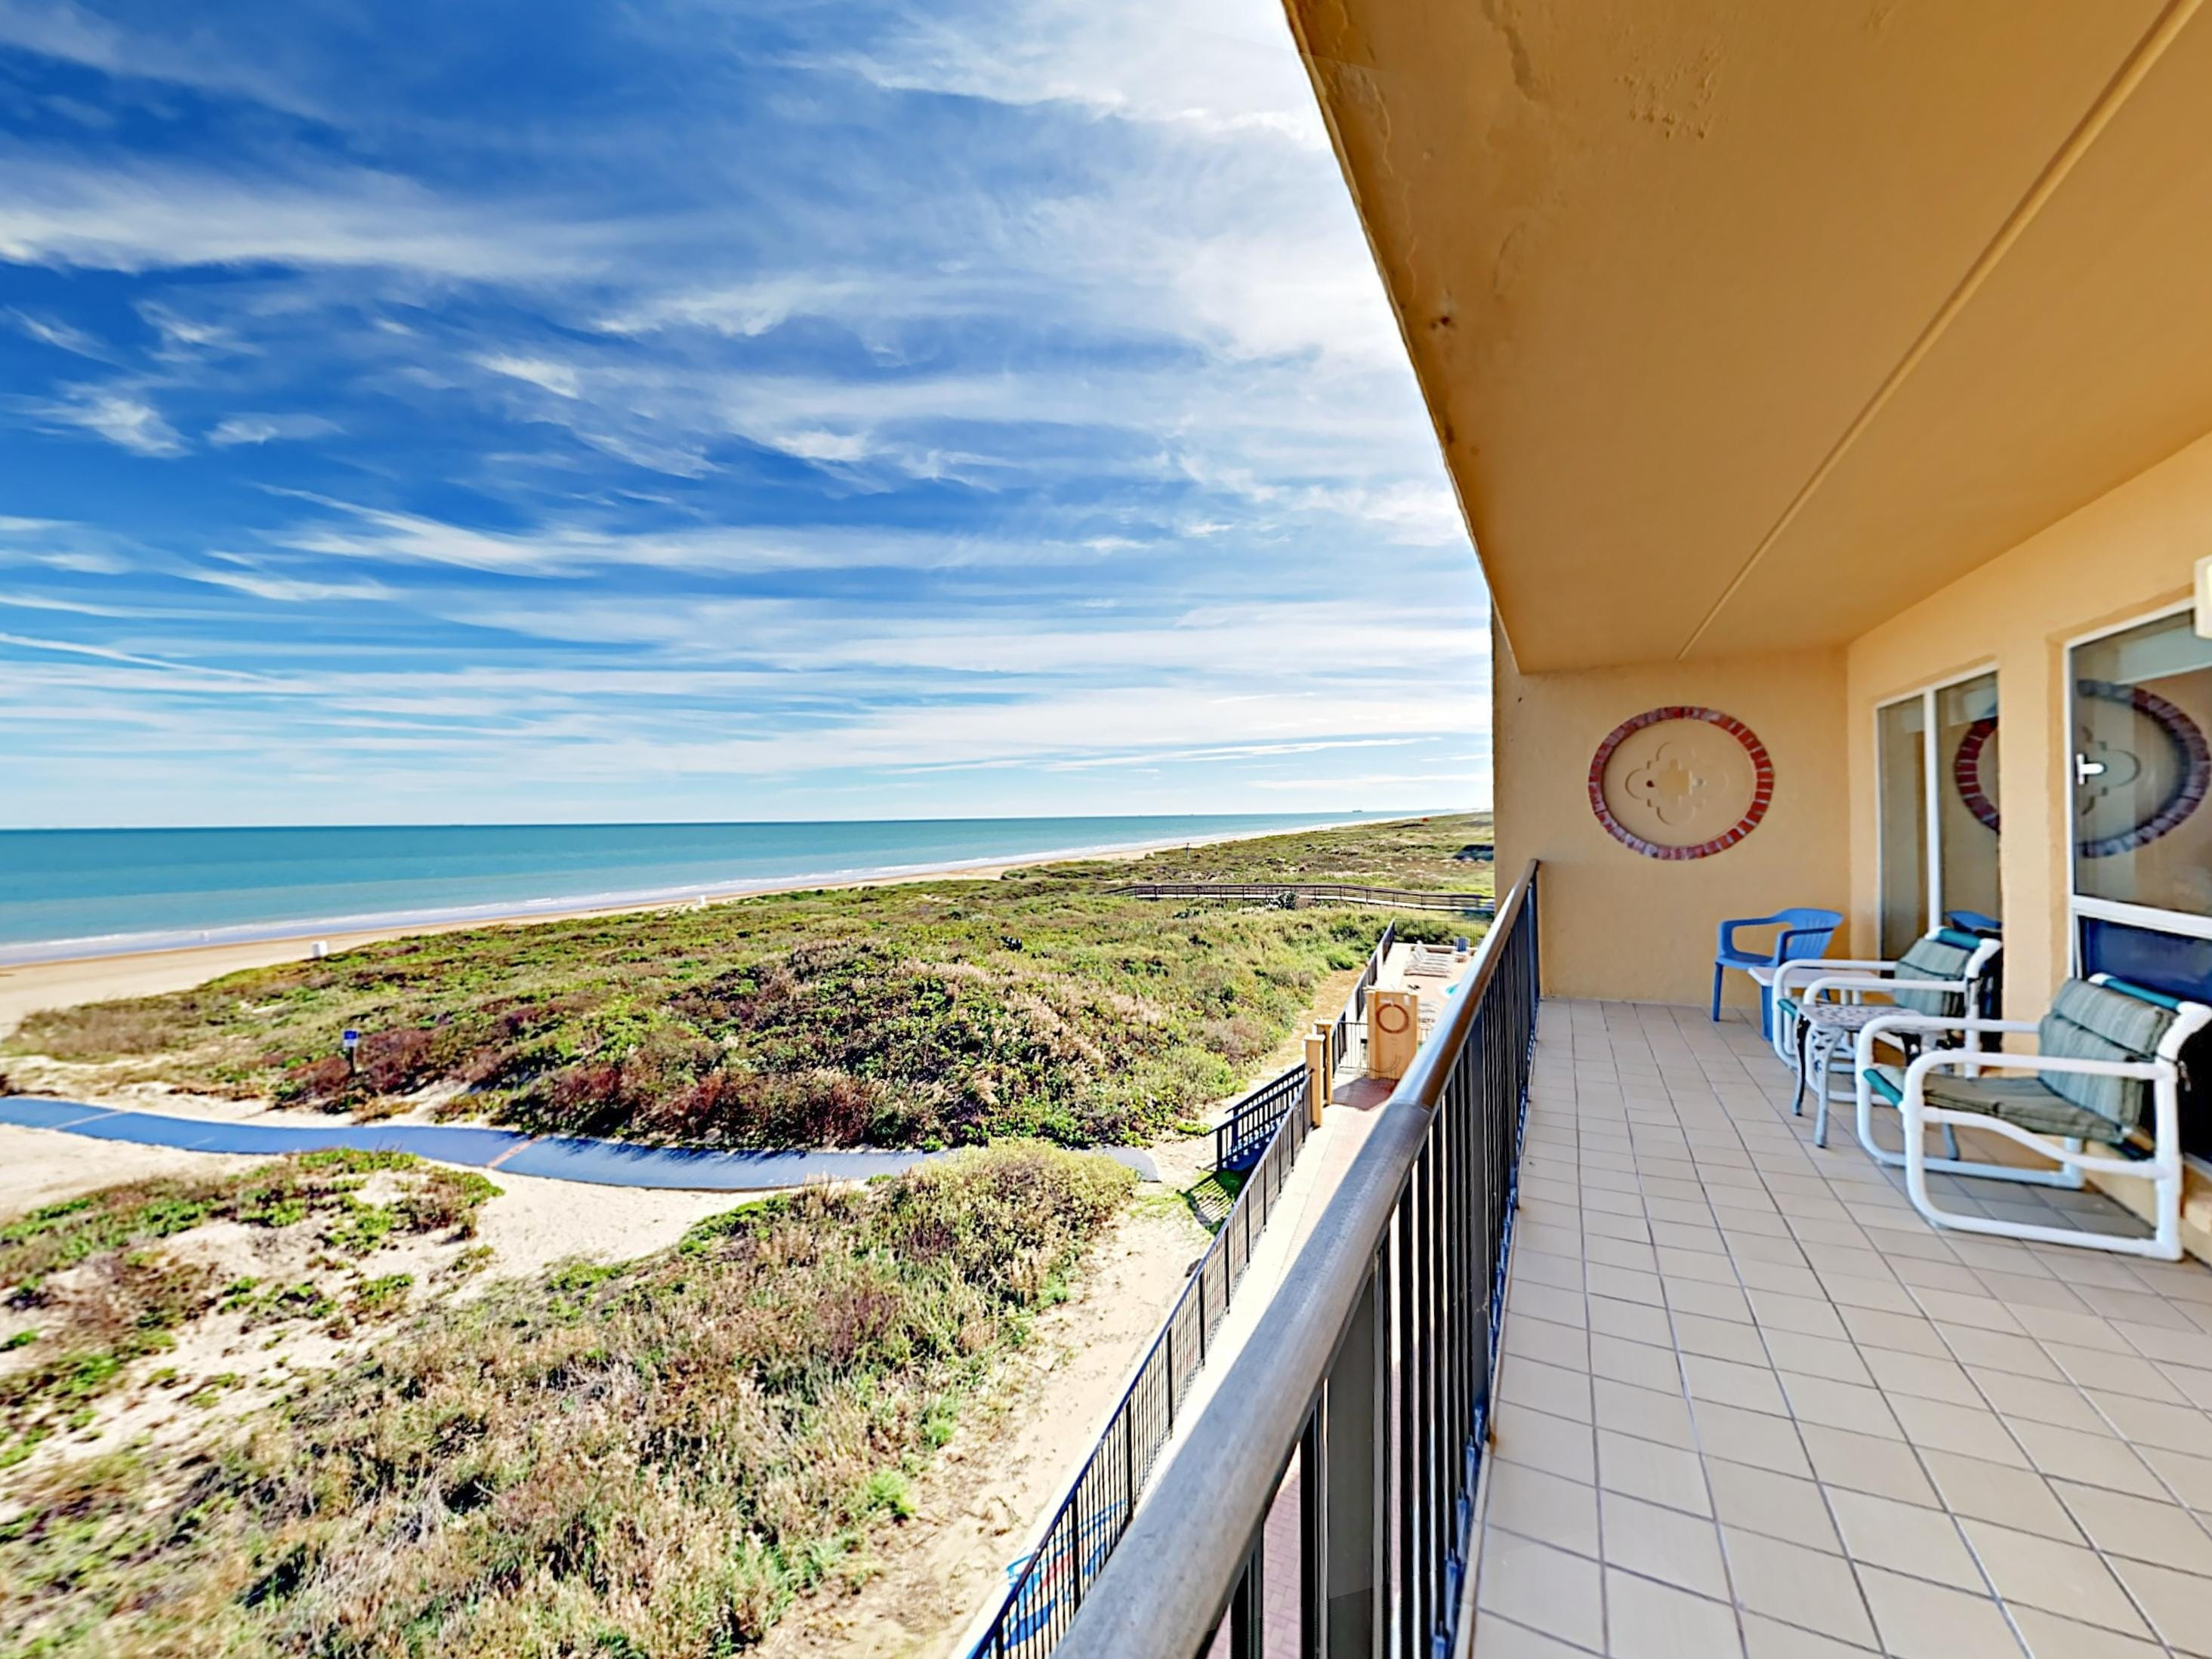 Welcome to South Padre Island! Enjoy 180-degree gulf views from your balcony. This stunning beachfront condo is professionally managed by TurnKey Vacation Rentals.